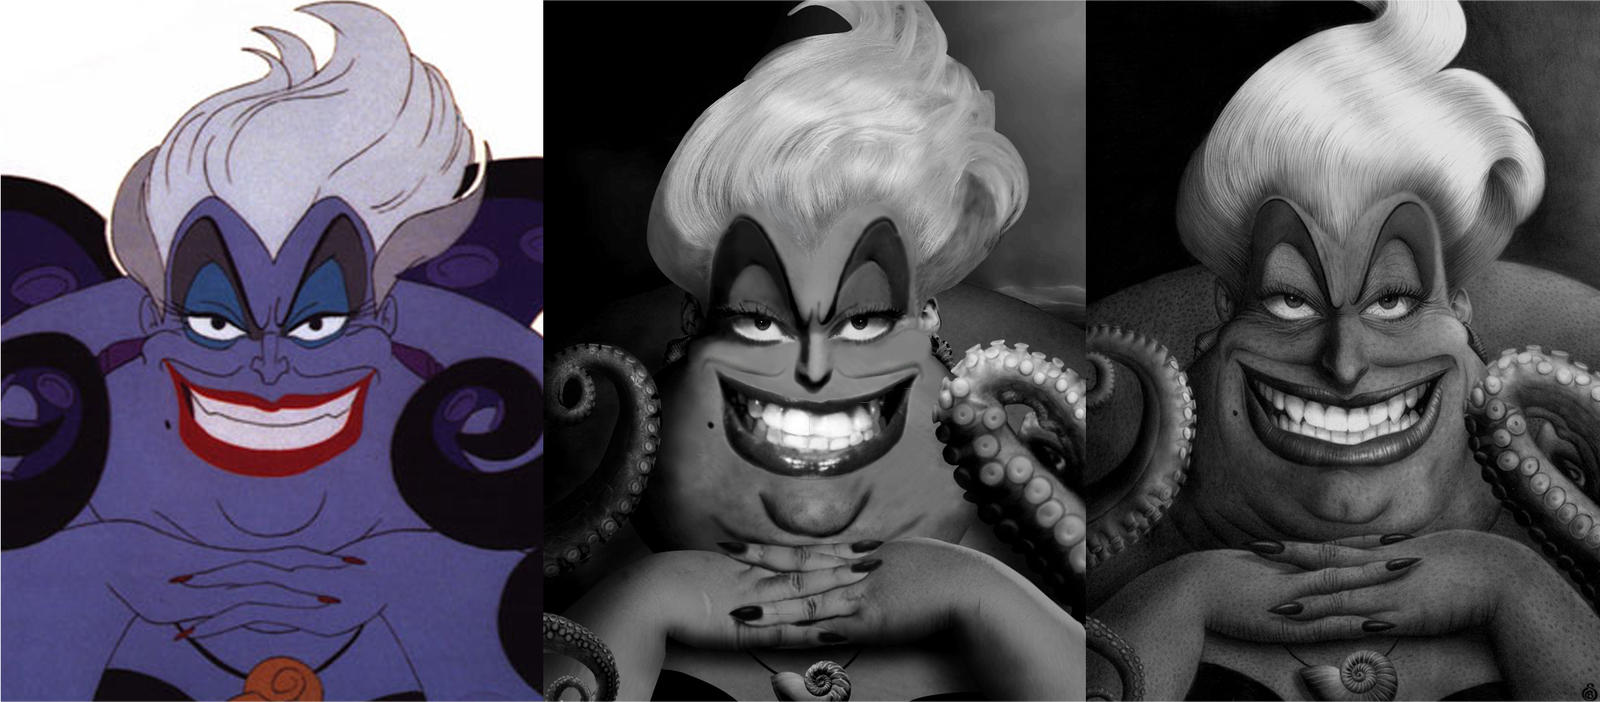 Ursula - From the movie to the drawing by Stanbos